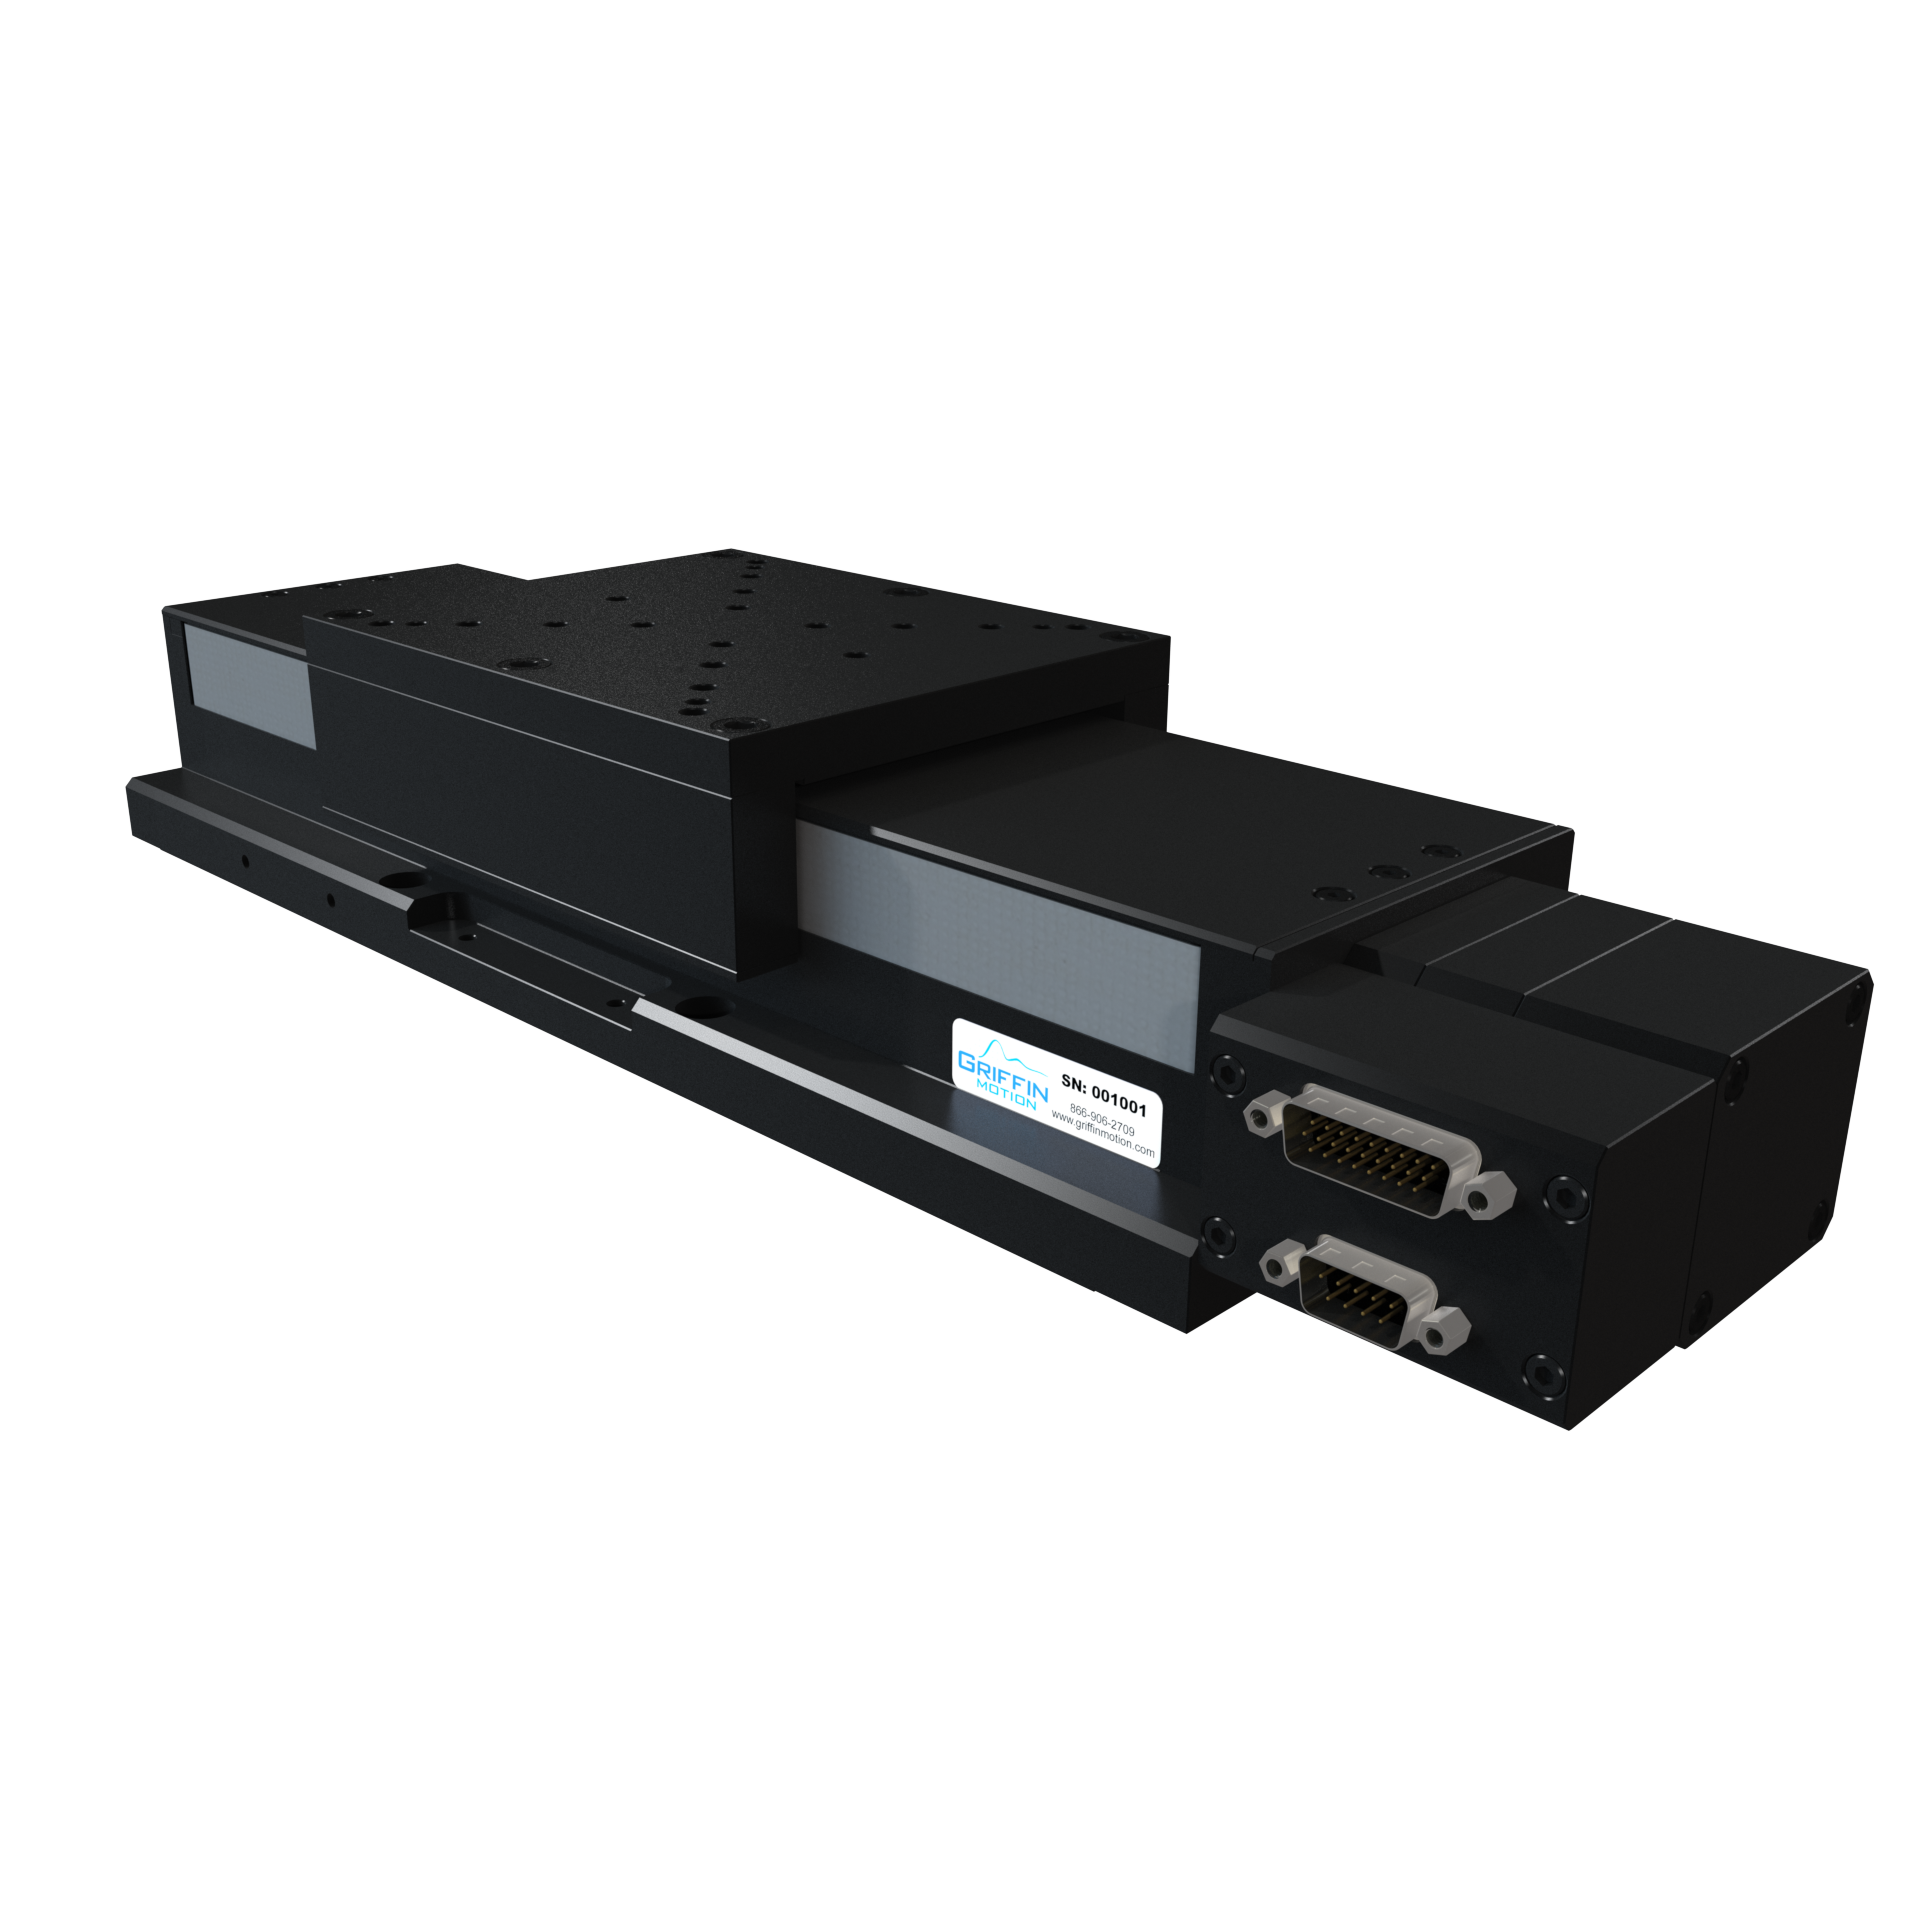 compact linear stage for high precision applications